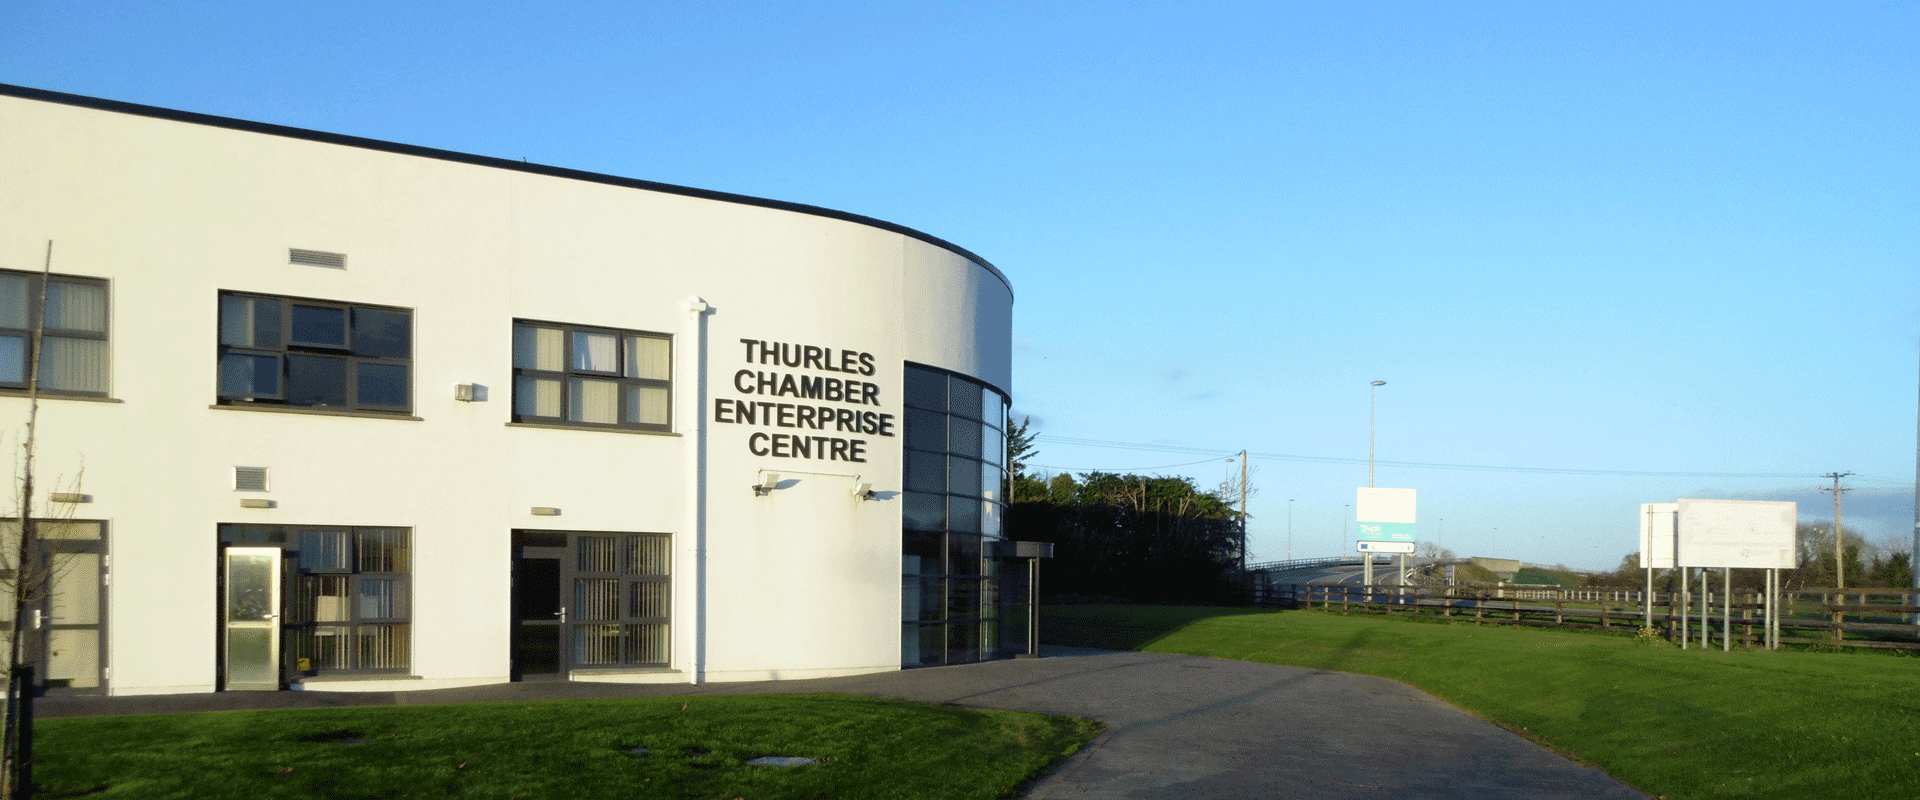 Southgate Distribution Ltd Office in Thurles Chamber Enterprise Centre